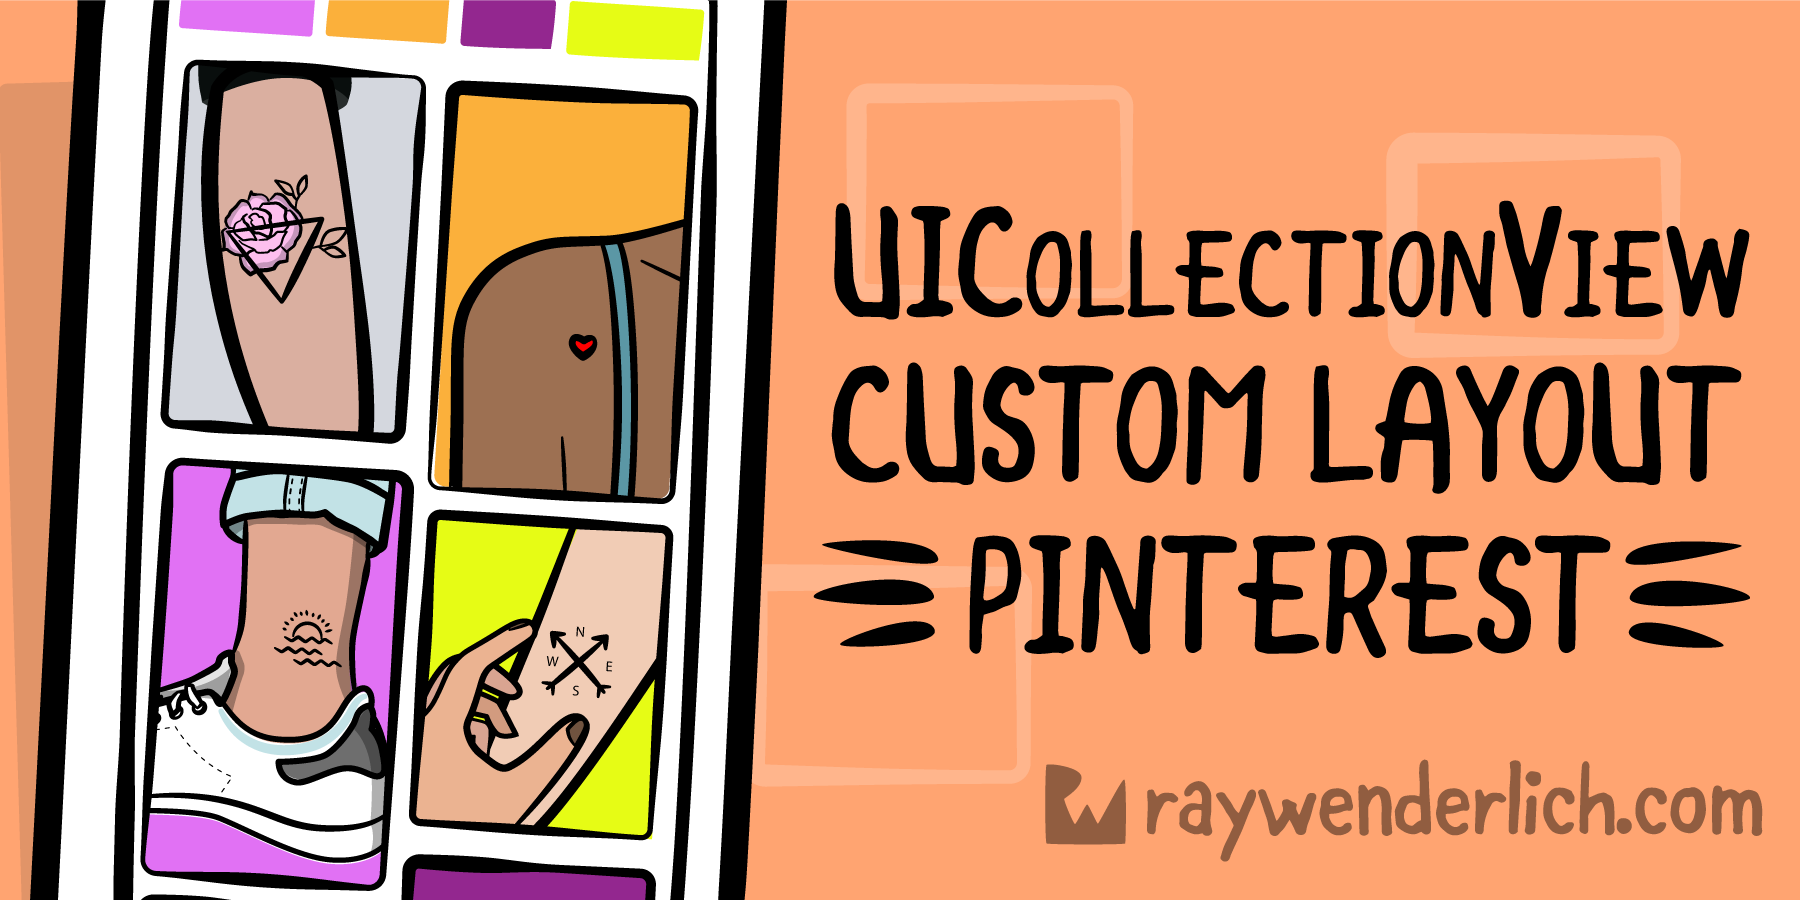 UICollectionView Custom Layout Tutorial: Pinterest